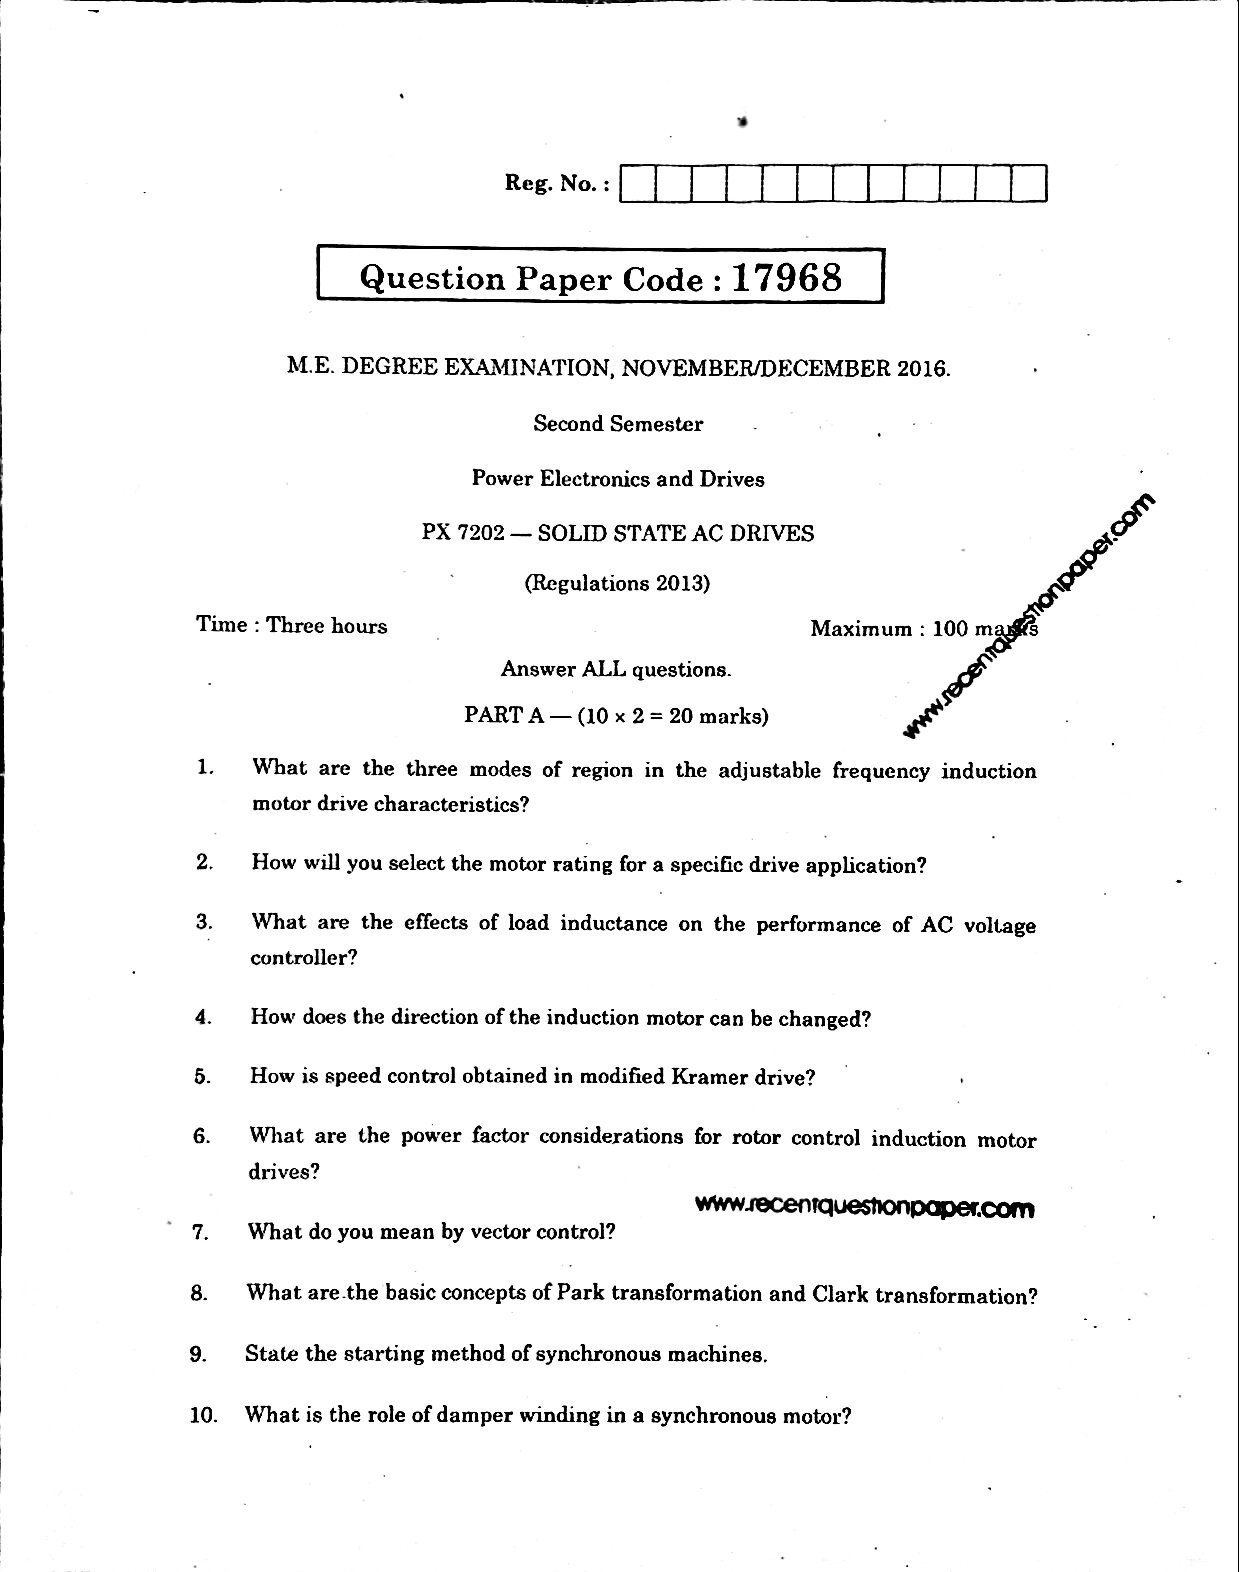 Solid State Ac Drives Anna University Question paper Nov/Dec 2016